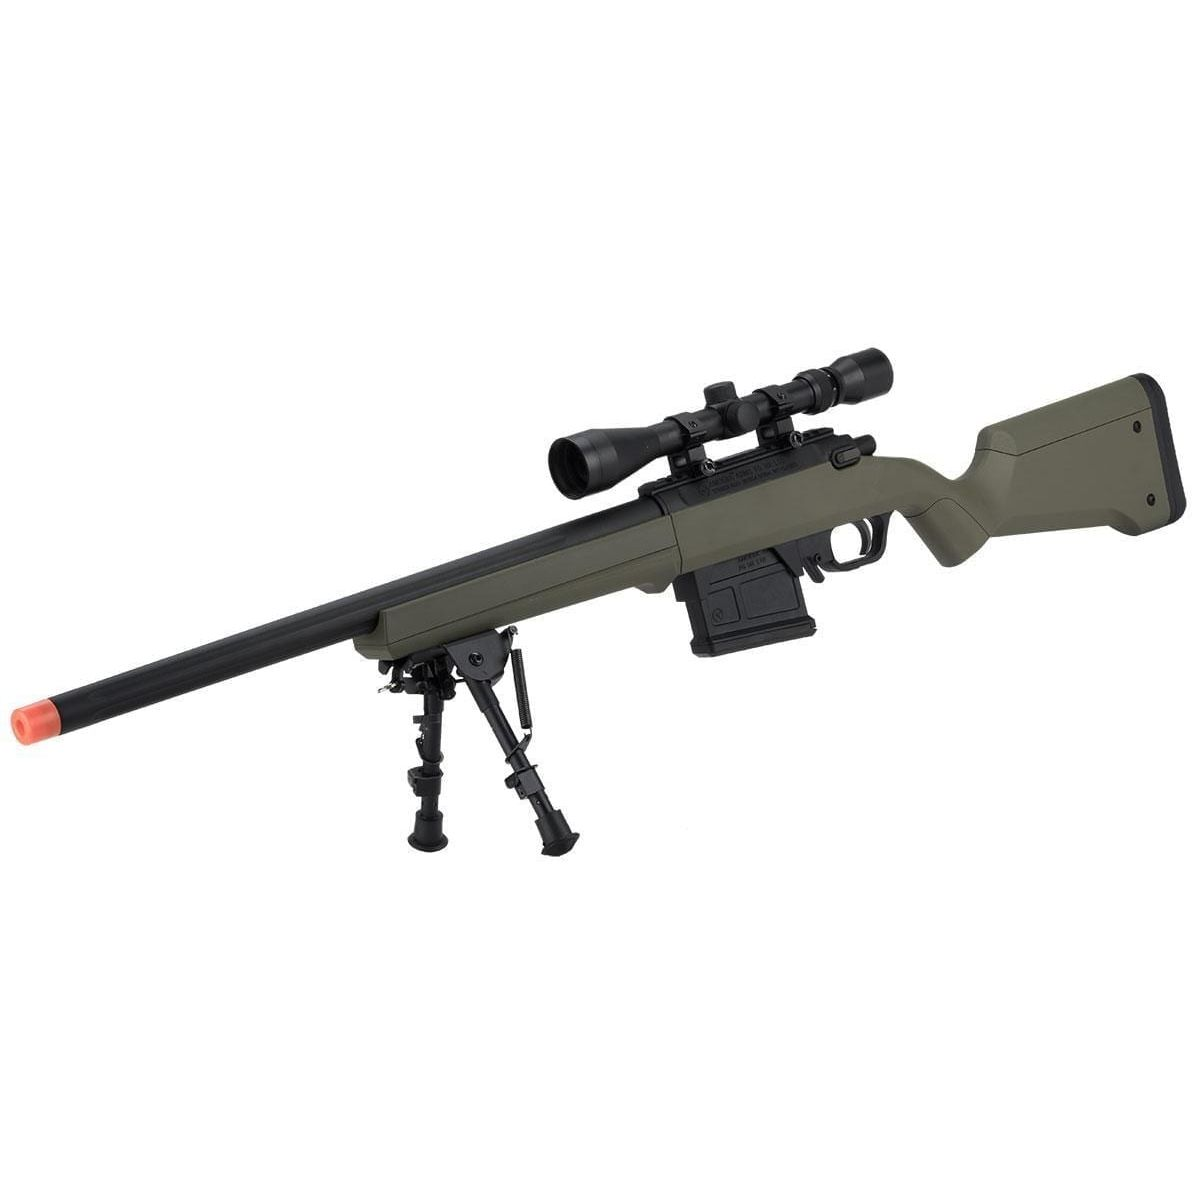 S1 Gen2 Bolt Action Sniper Rifle ares amoeba